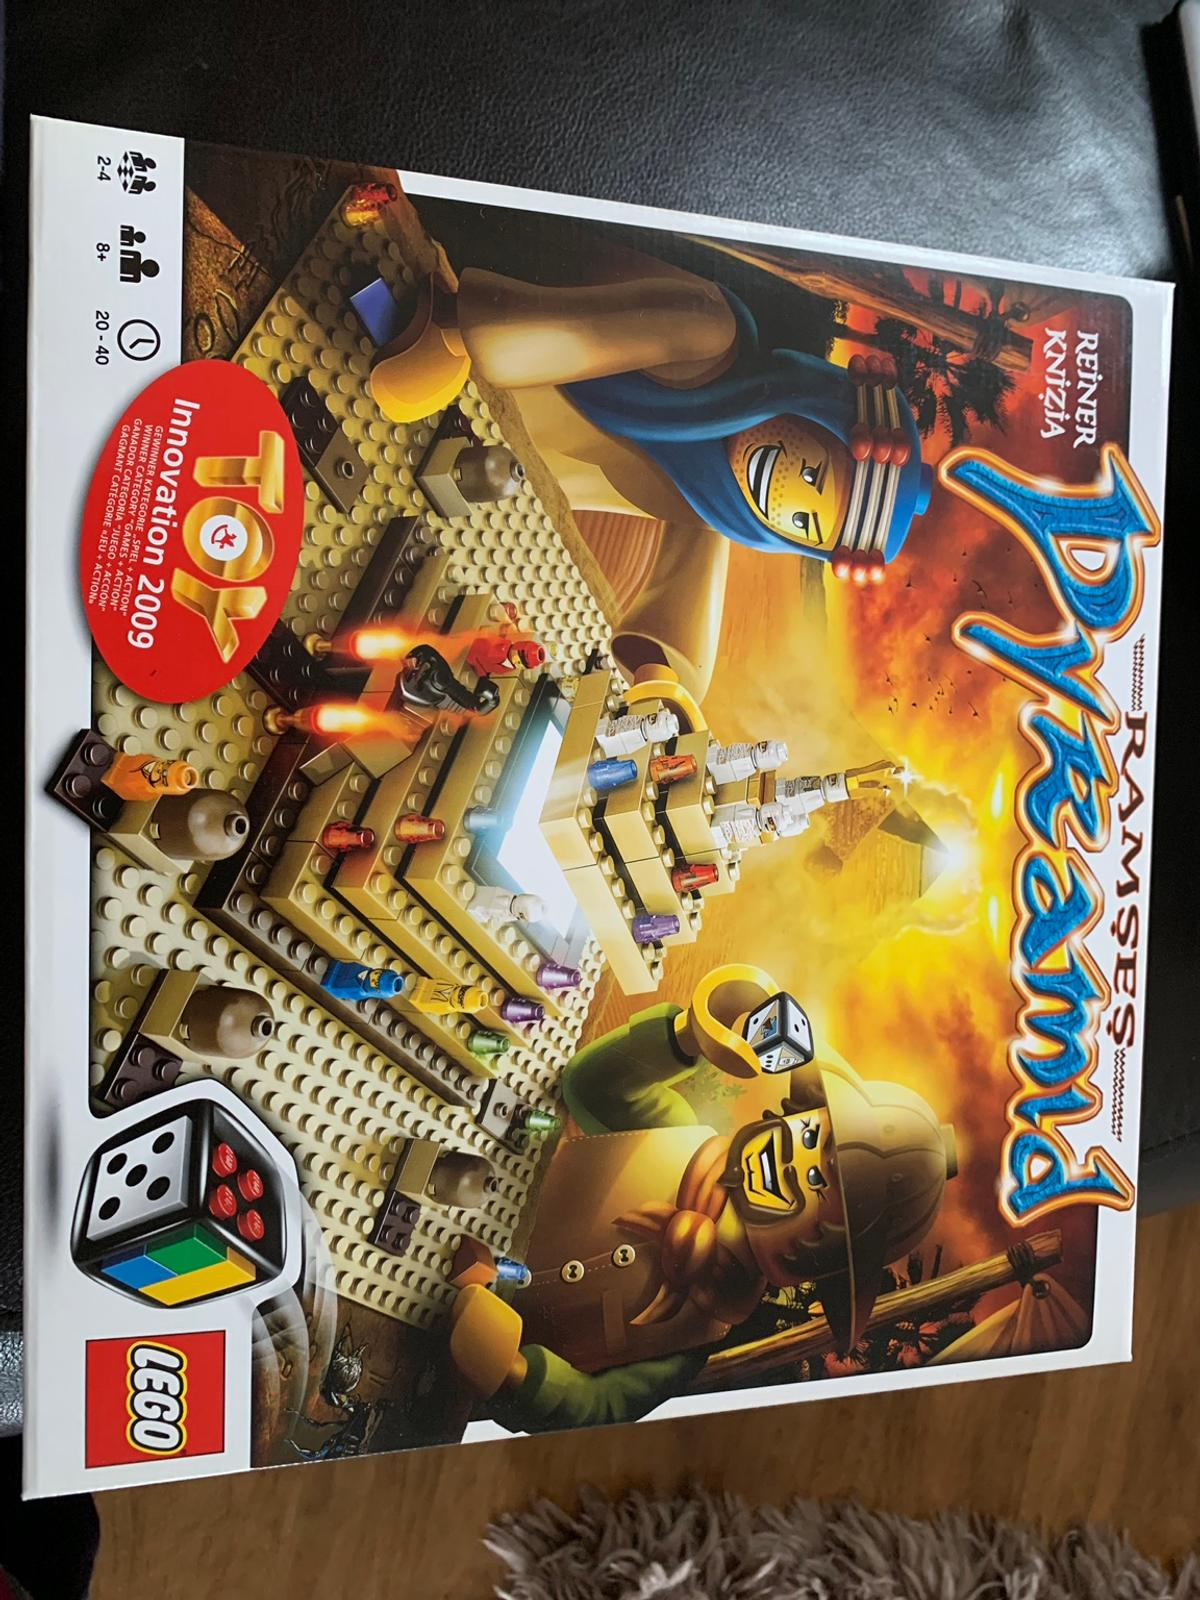 Lego Ramses pyramid board game reference 3843 and suitable for 2-4 players The instructions and all parts and players are available with mint condition New would cost on amazon £66.99 happy to sell for £25 collect If posted add £5